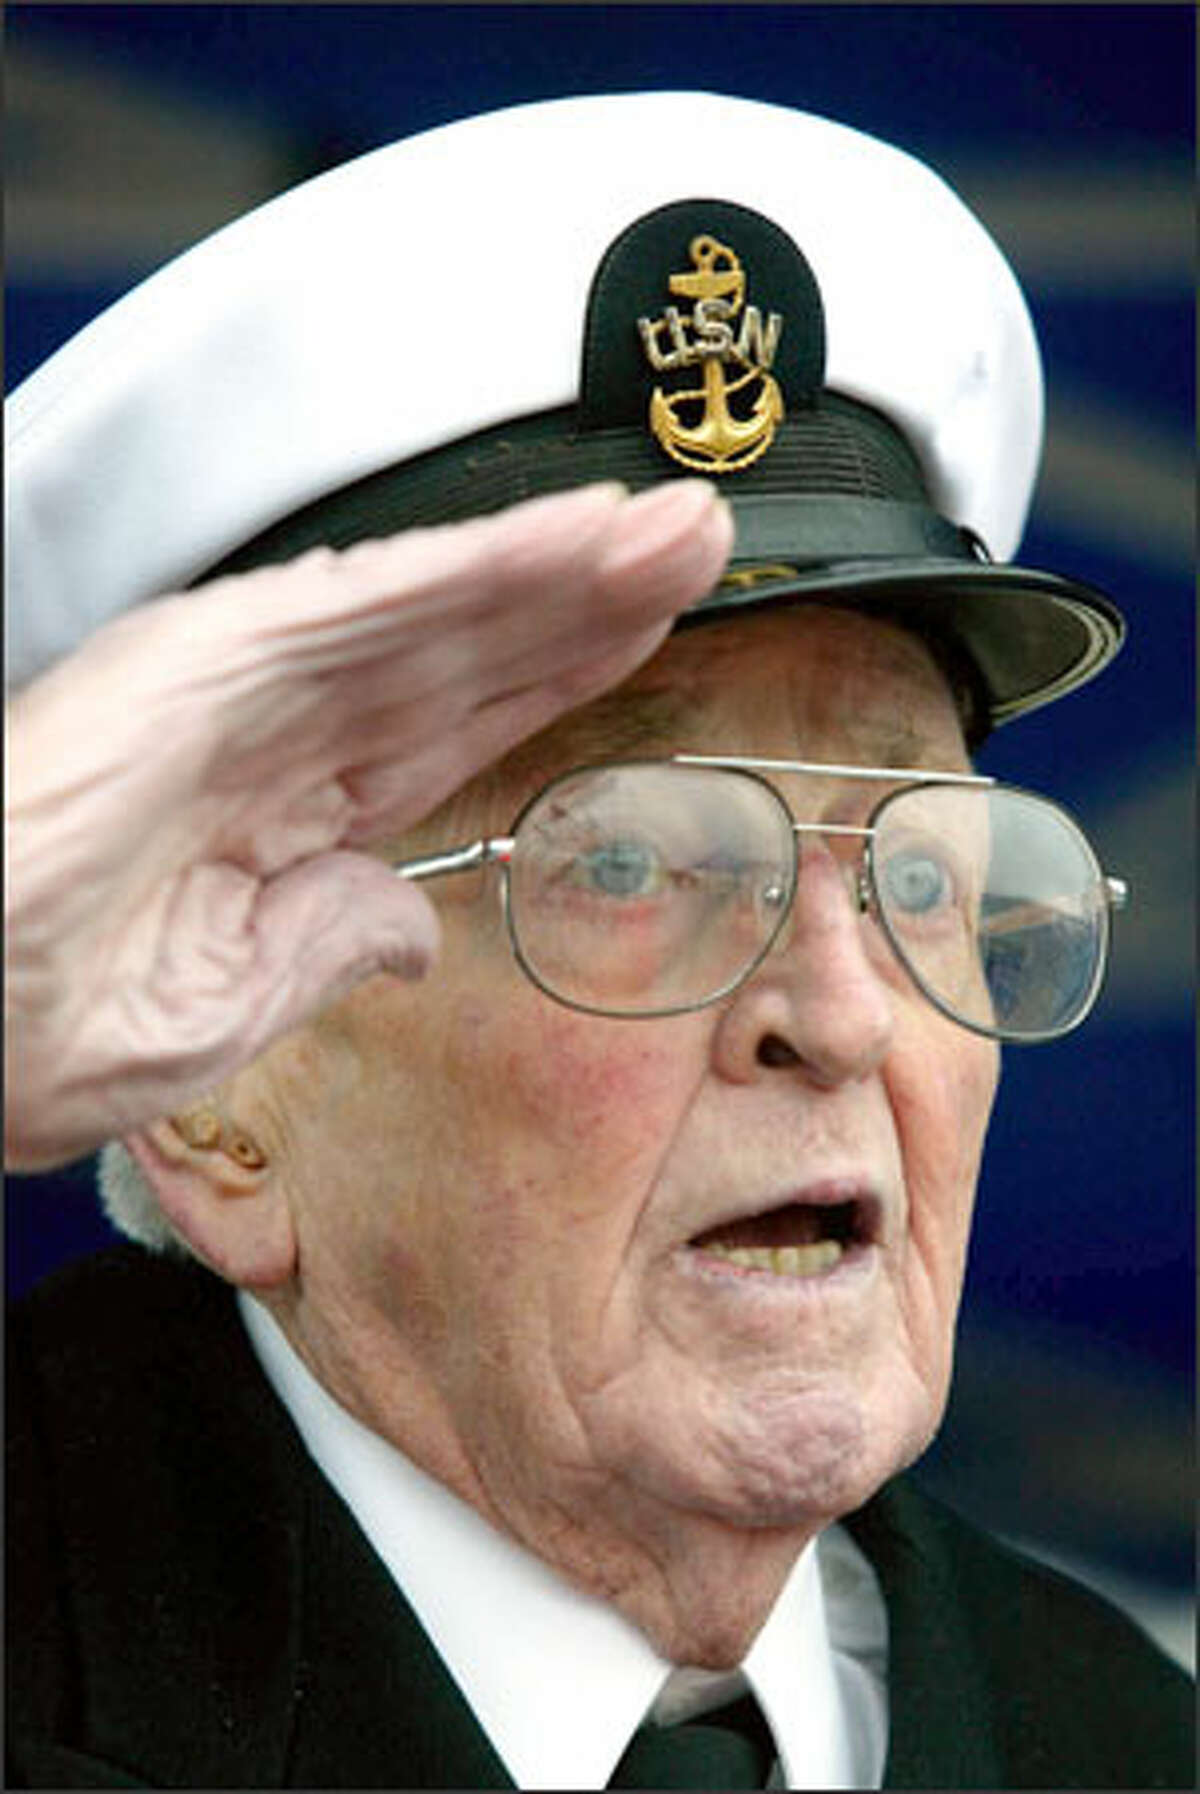 Retired Chief Petty Officer William Brown, 85, salutes and recites the Pledge of Allegiance during Pearl Harbor Memorial Day activities at Naval Station Everett. He and a handful of other Pearl Harbor survivors were honored.